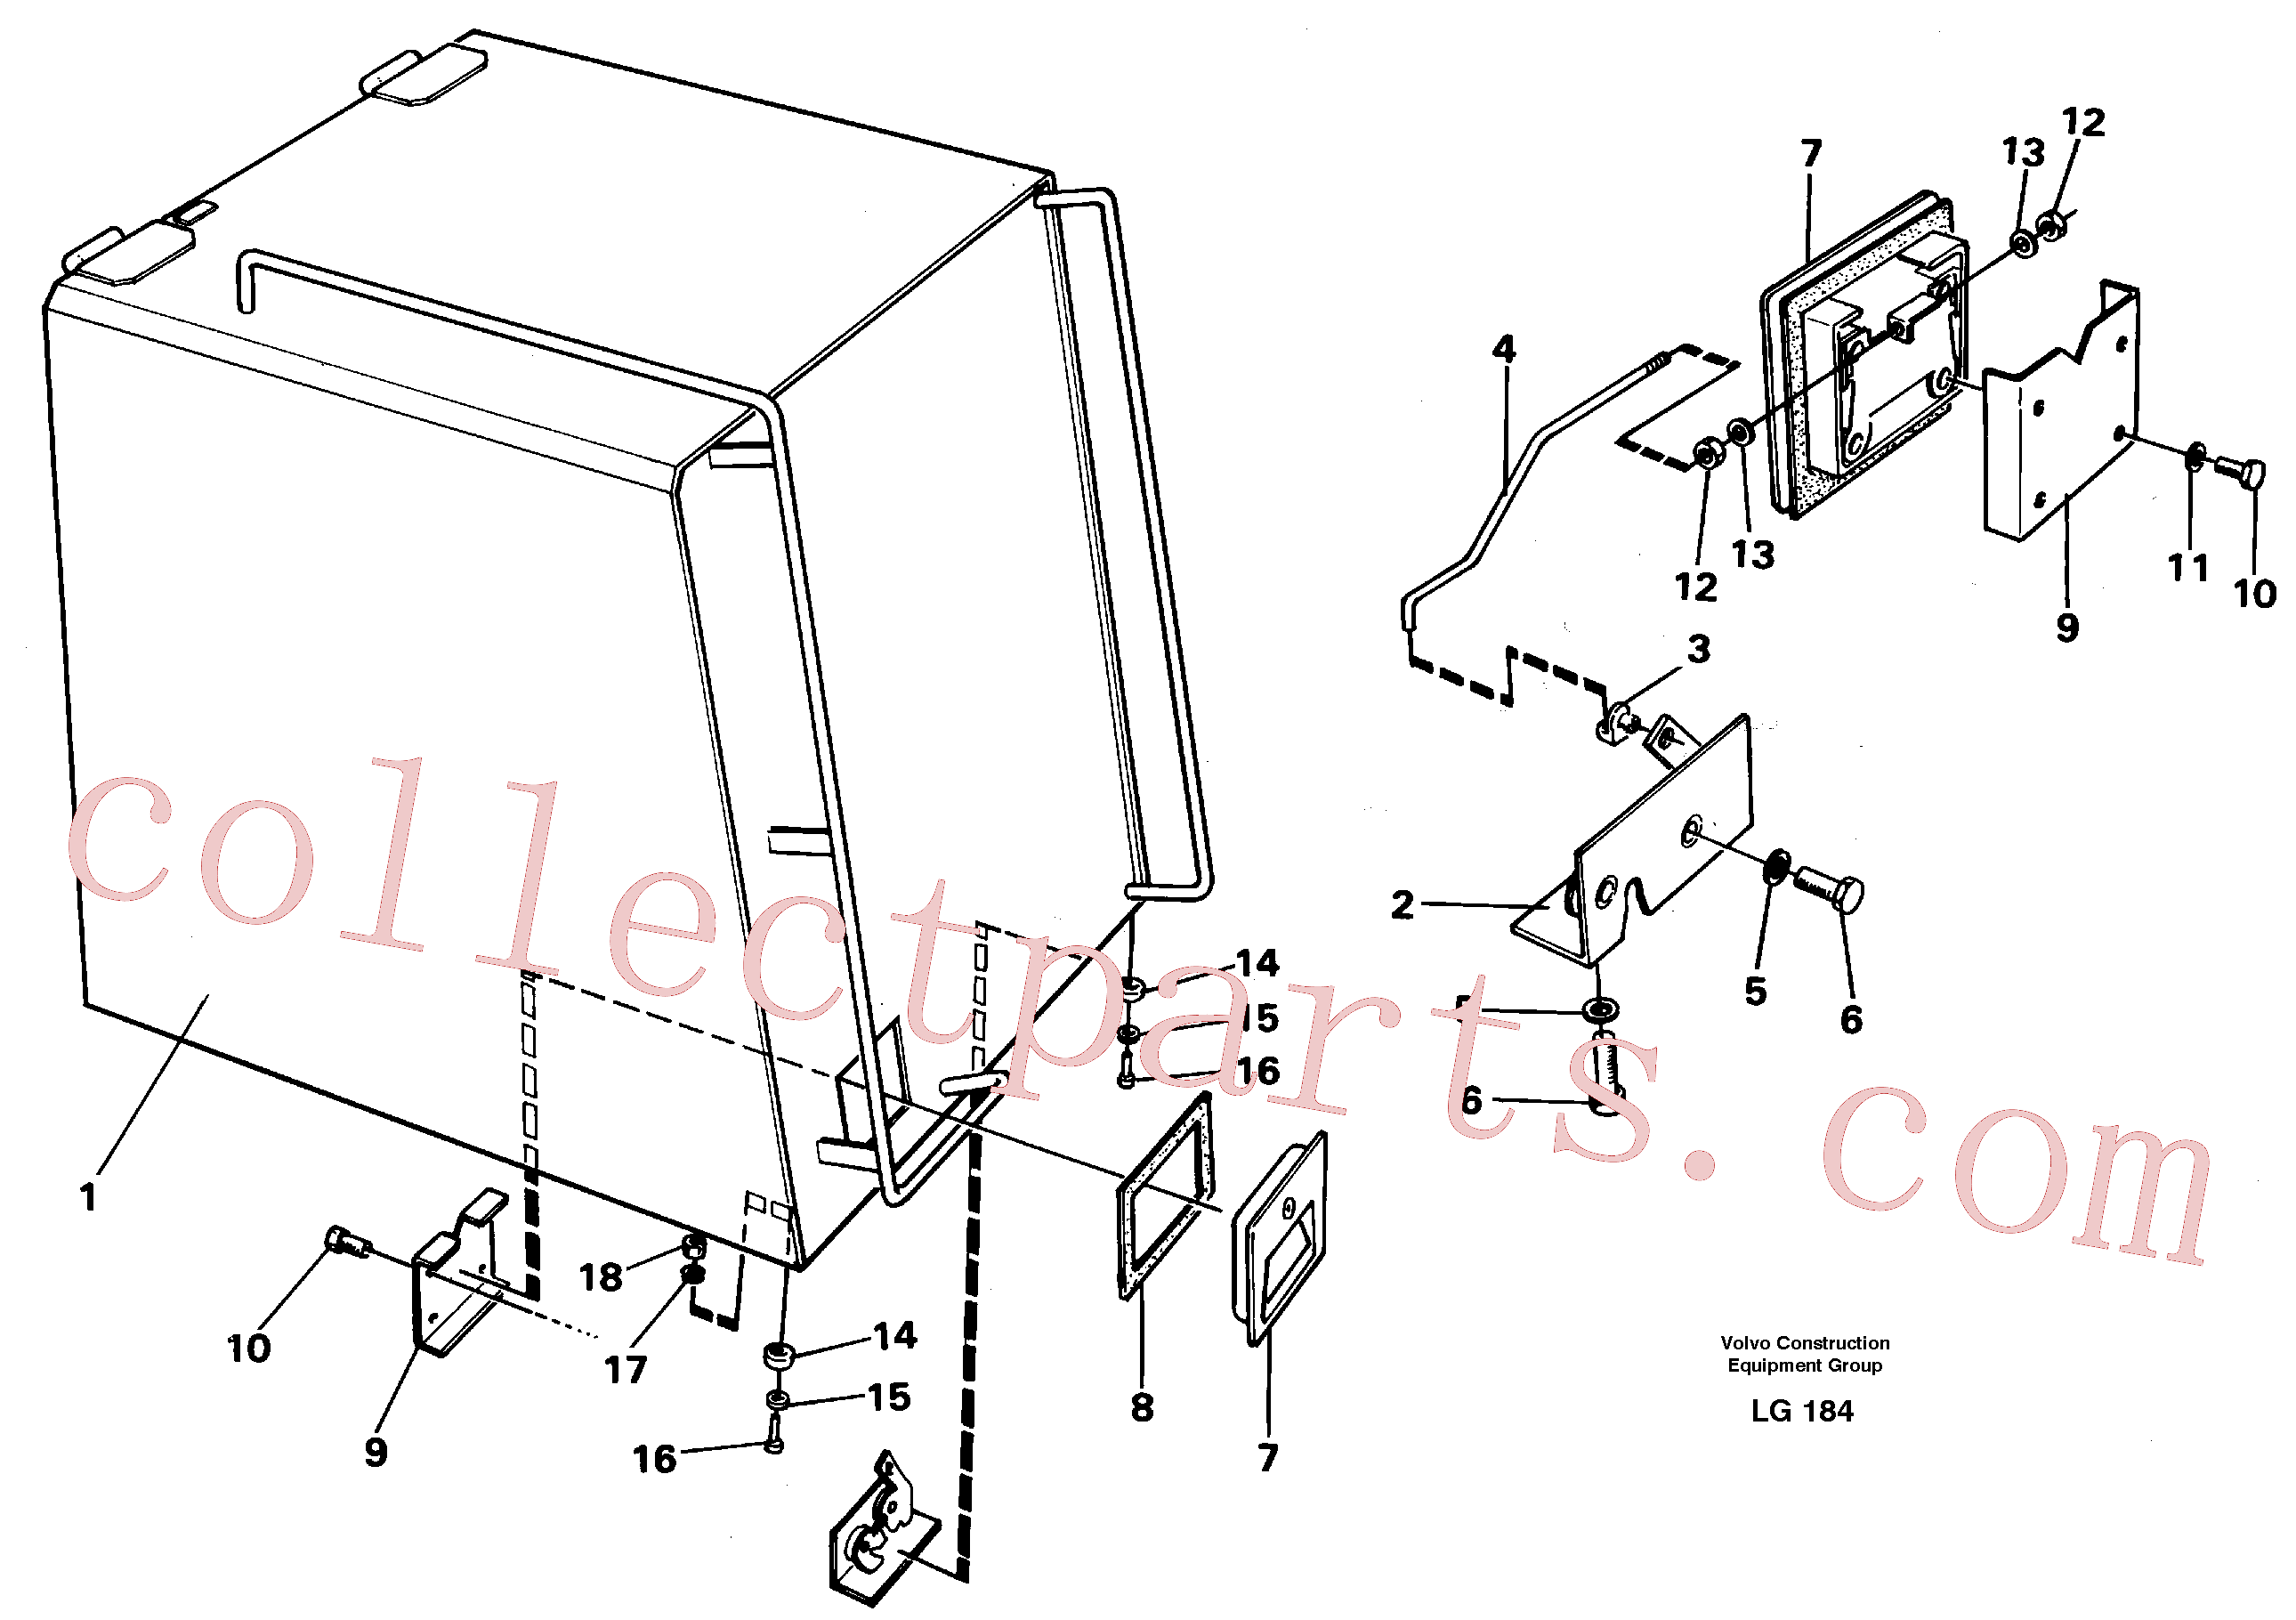 VOE11706359 for Volvo Casing over battery(LG184 assembly)